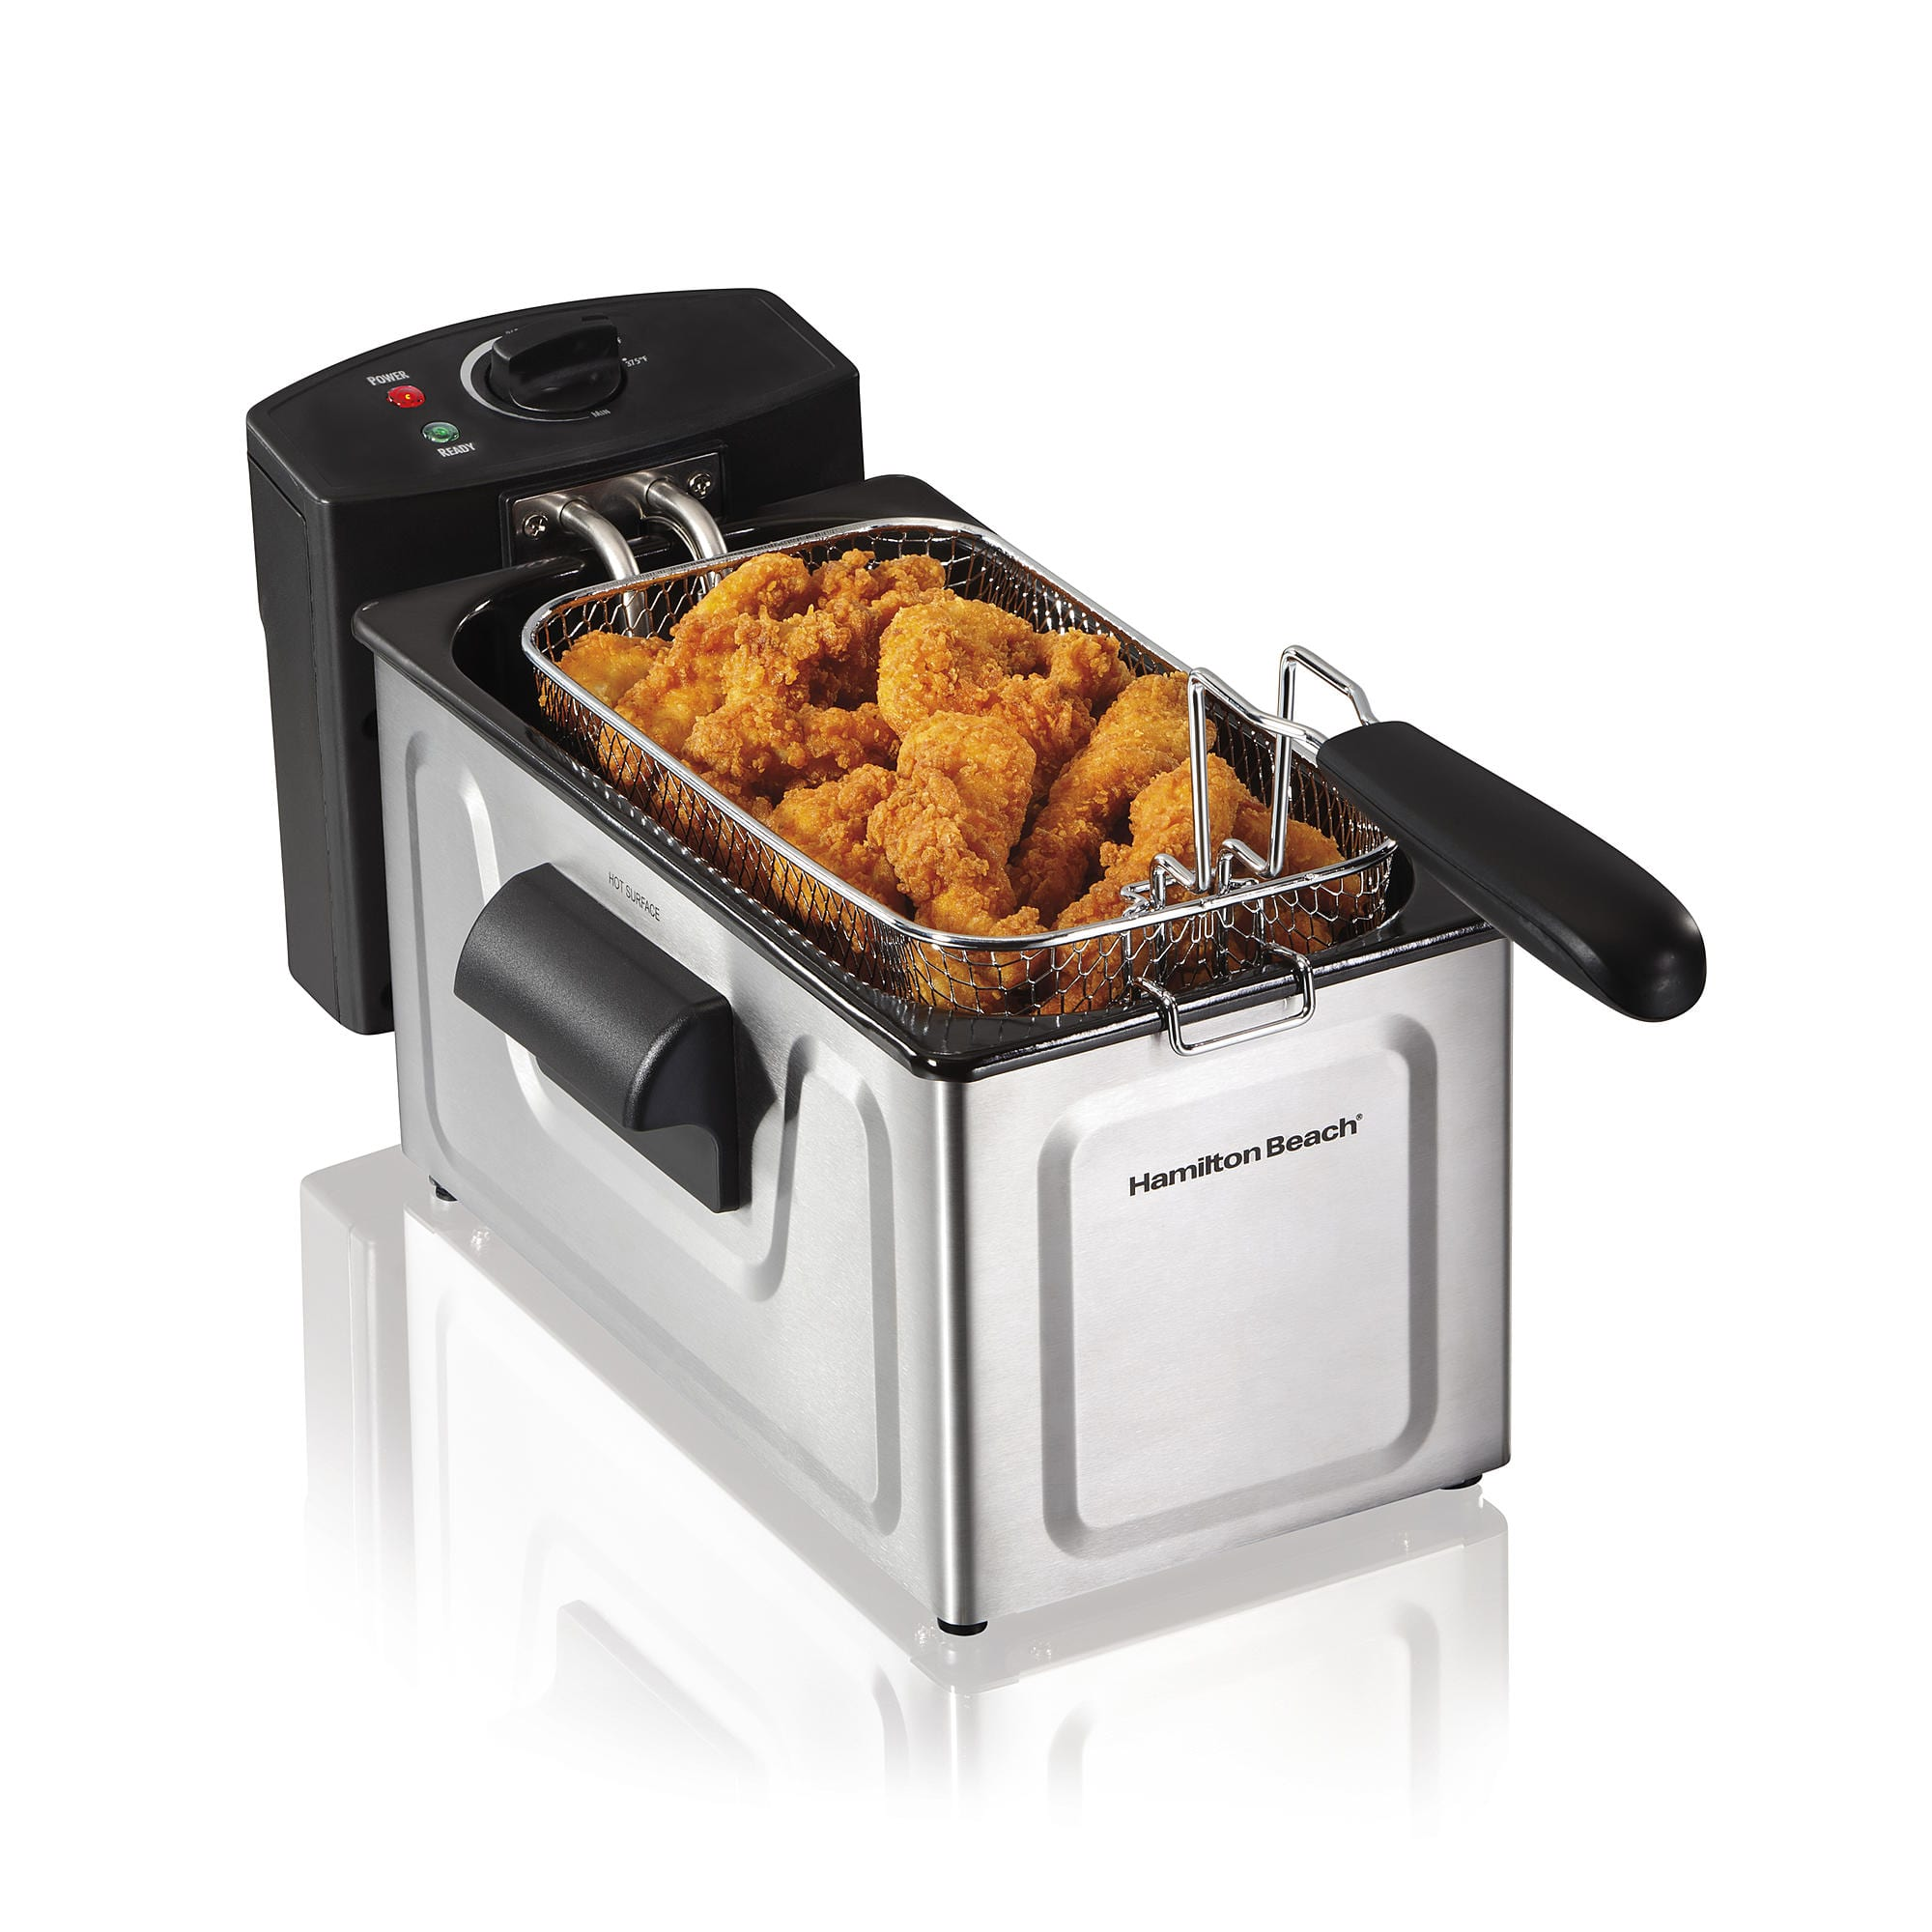 Hamilton Beach: 8-Qt. Slow Cooker or 8-Cup Deep Fryer + $10 Points  $27 + Free Store Pickup